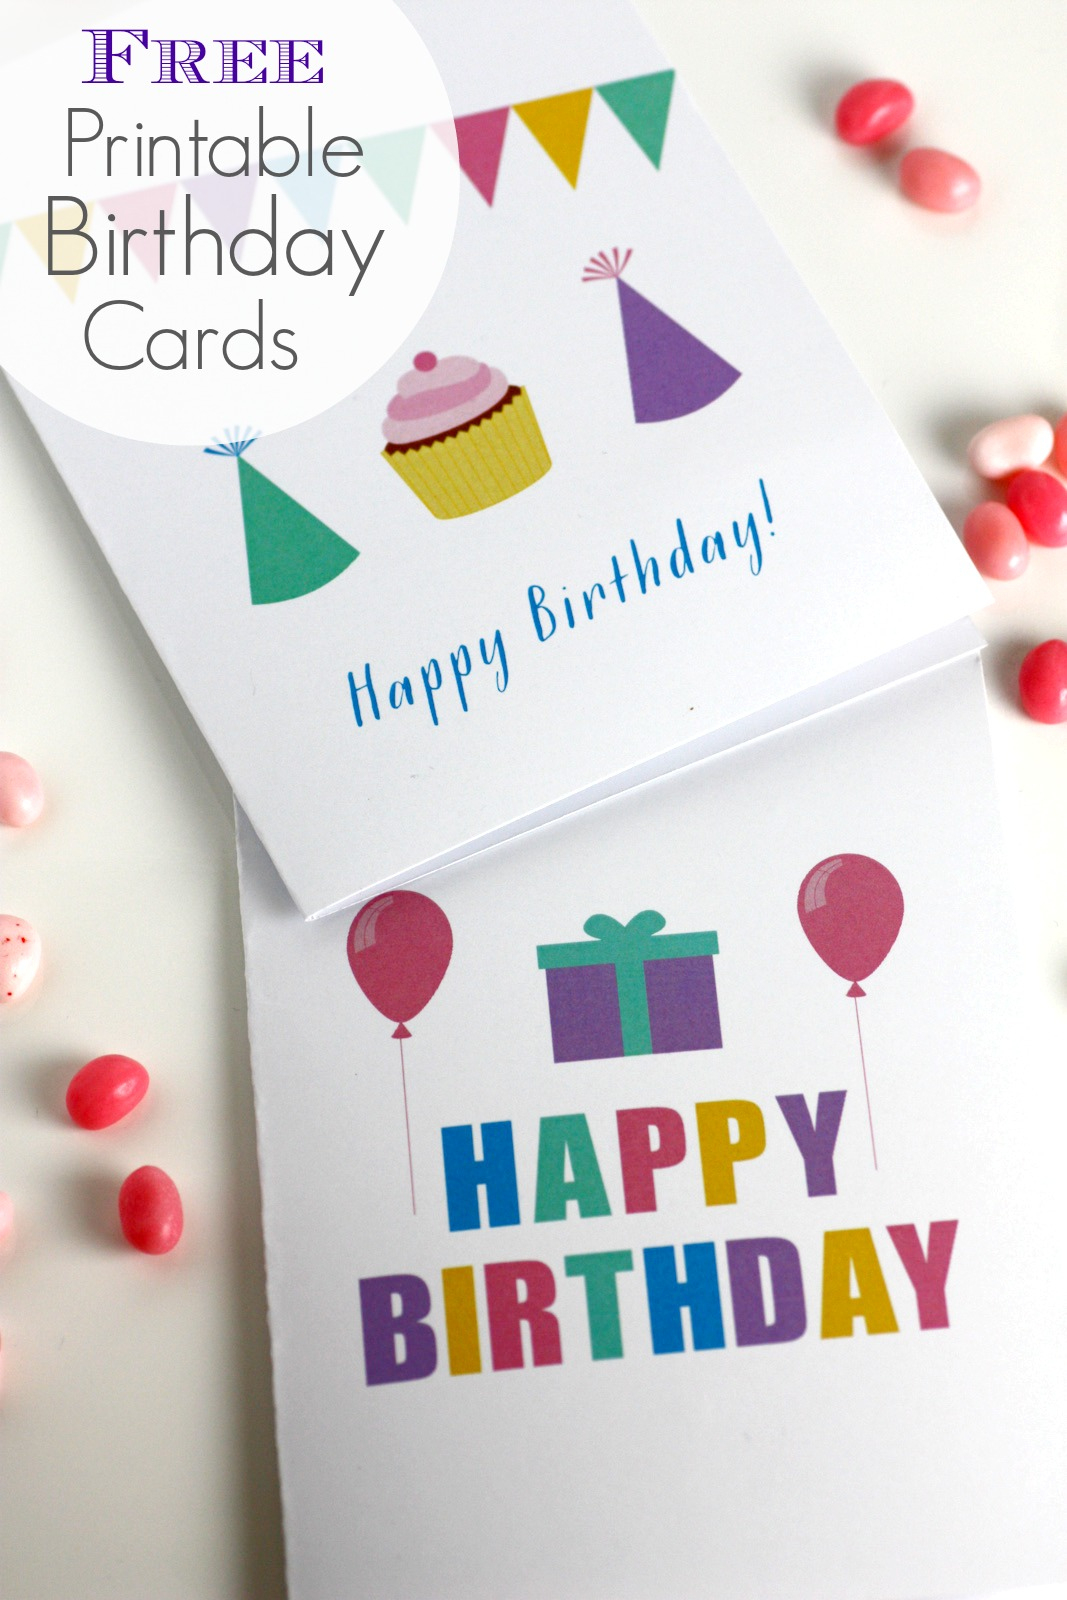 Free Printable Blank Birthday Cards | Catch My Party - Free Printable Greeting Cards